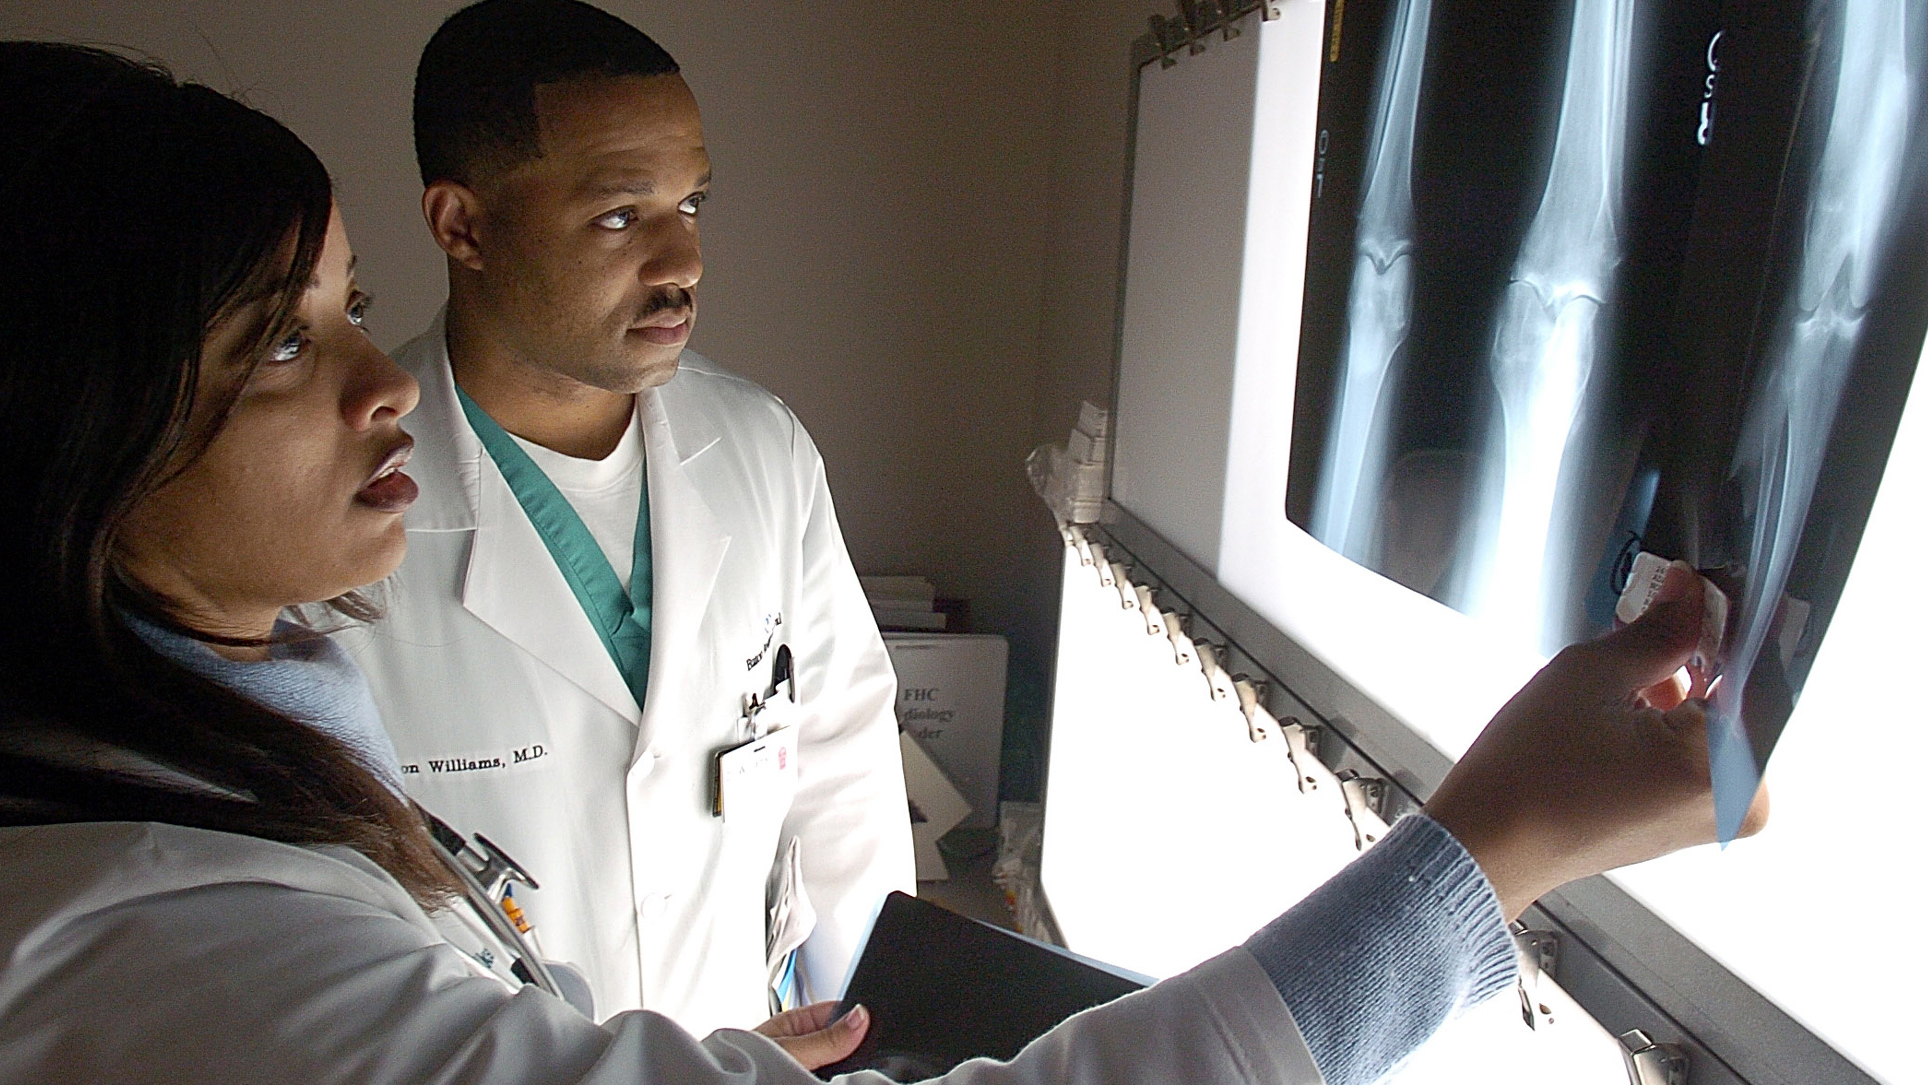 """** ADVANCE FOR Monday, DEC. 27 **Dr. Margeaux Coleman Walker, left, looks over x-rays with fellow resident Dr. Leon D. Williams at the clinic where they are doing their residencies in family medicine Dec. 9, 2004, in Baton Rouge, La. Tulane University is starting a new program to help reduce the shortage of doctors in rural Louisiana and is looking for students like Dr. Coleman Walker, who has known she wanted to be a doctor since she was 11 or 12 and helped her grandmother clean the doctor's office in Church Point, La., a town of 4,700. But she wants much more than a medical practice. """"Hopefully, when I want to retire, I'll be able to say, I worked hard and I made a difference in people's lives."""" (AP Photo/Bill Feig)"""